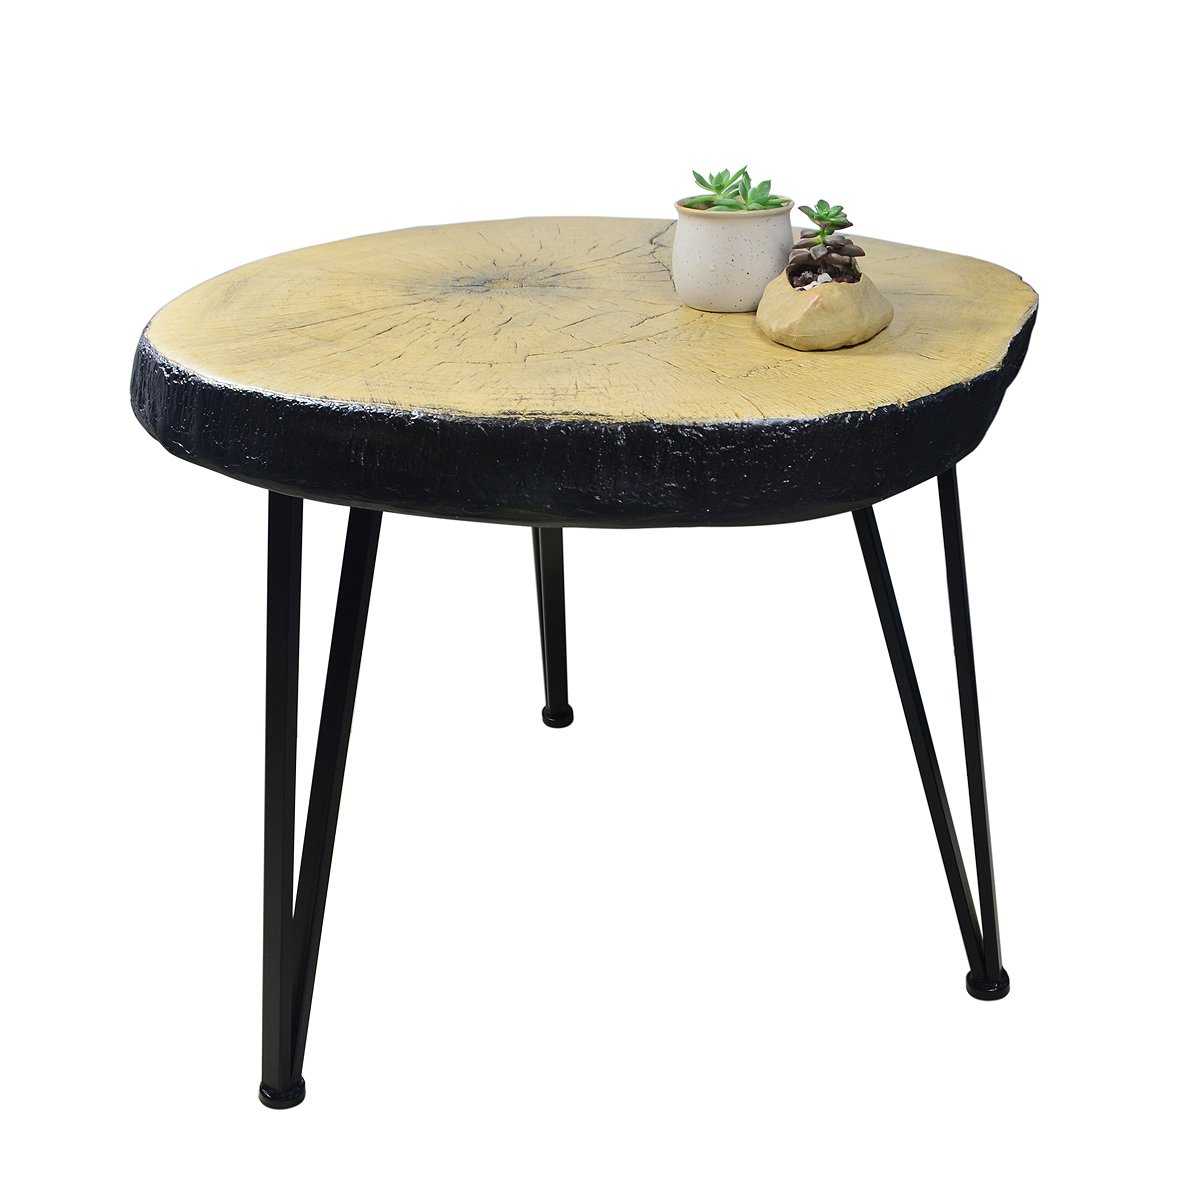 Suneon End Tables, Imitation Wood(Magnesium Oxide) Coffee Side Table for Living Room,Bedroom,Balcony,Garden and Office by SUNEON (Image #4)